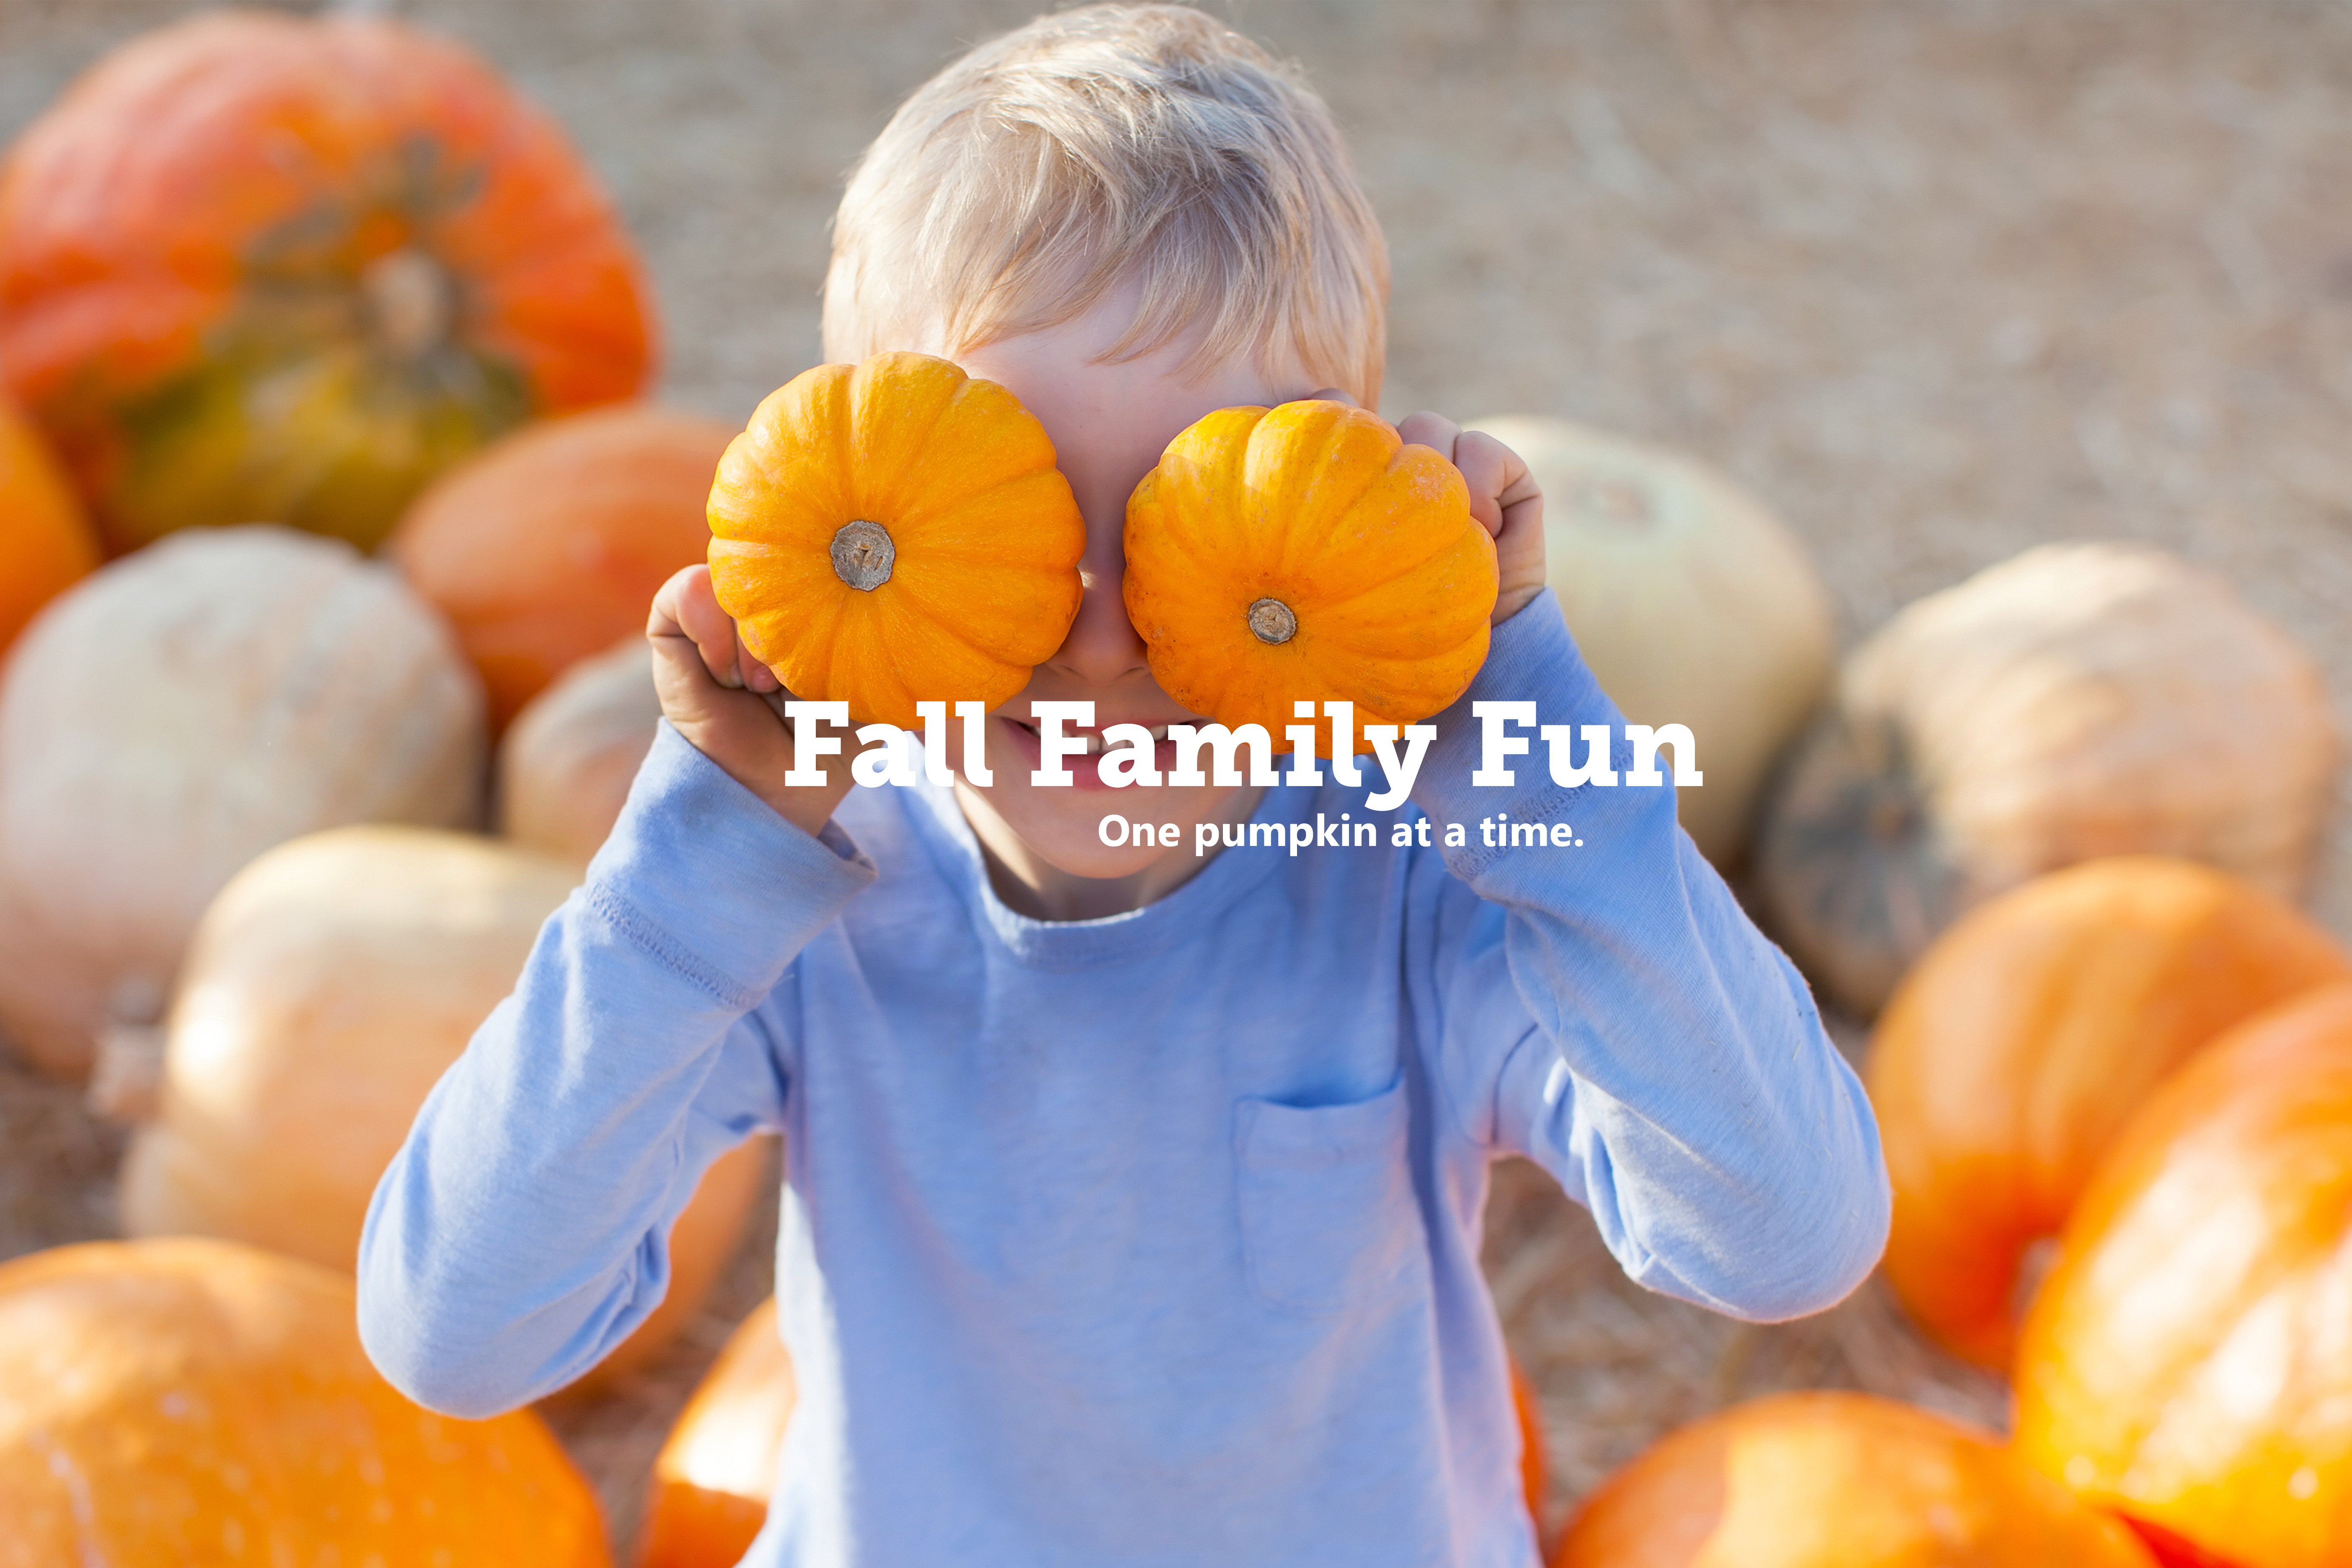 fall family fun.jpg